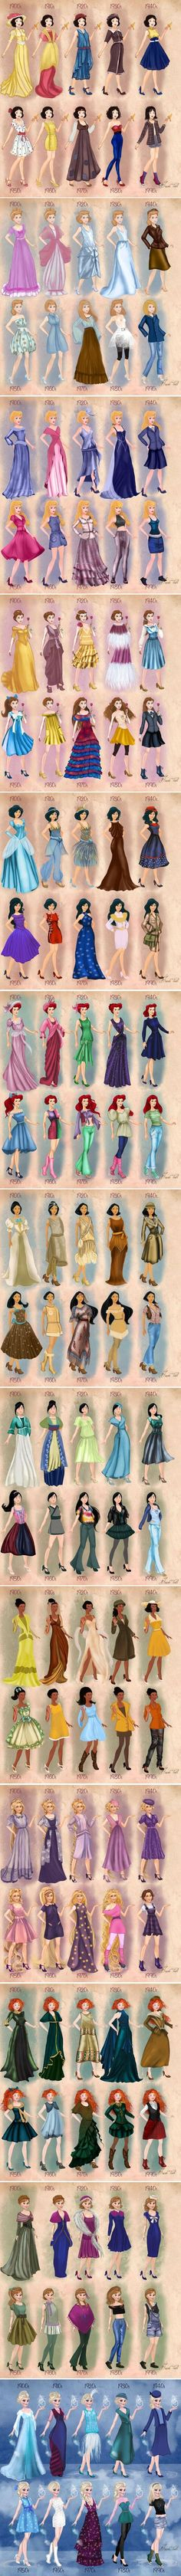 Disney Princesses in Century Fashion. My fav disney princess is Aurora. My fav dress are all dresses in (how can always made the greatest dresses? Disney Girls, Disney Style, Disney Love, Disney Magic, Disney And Dreamworks, Disney Pixar, Disney Characters, Disney Princesses, Disney Princess Drawings